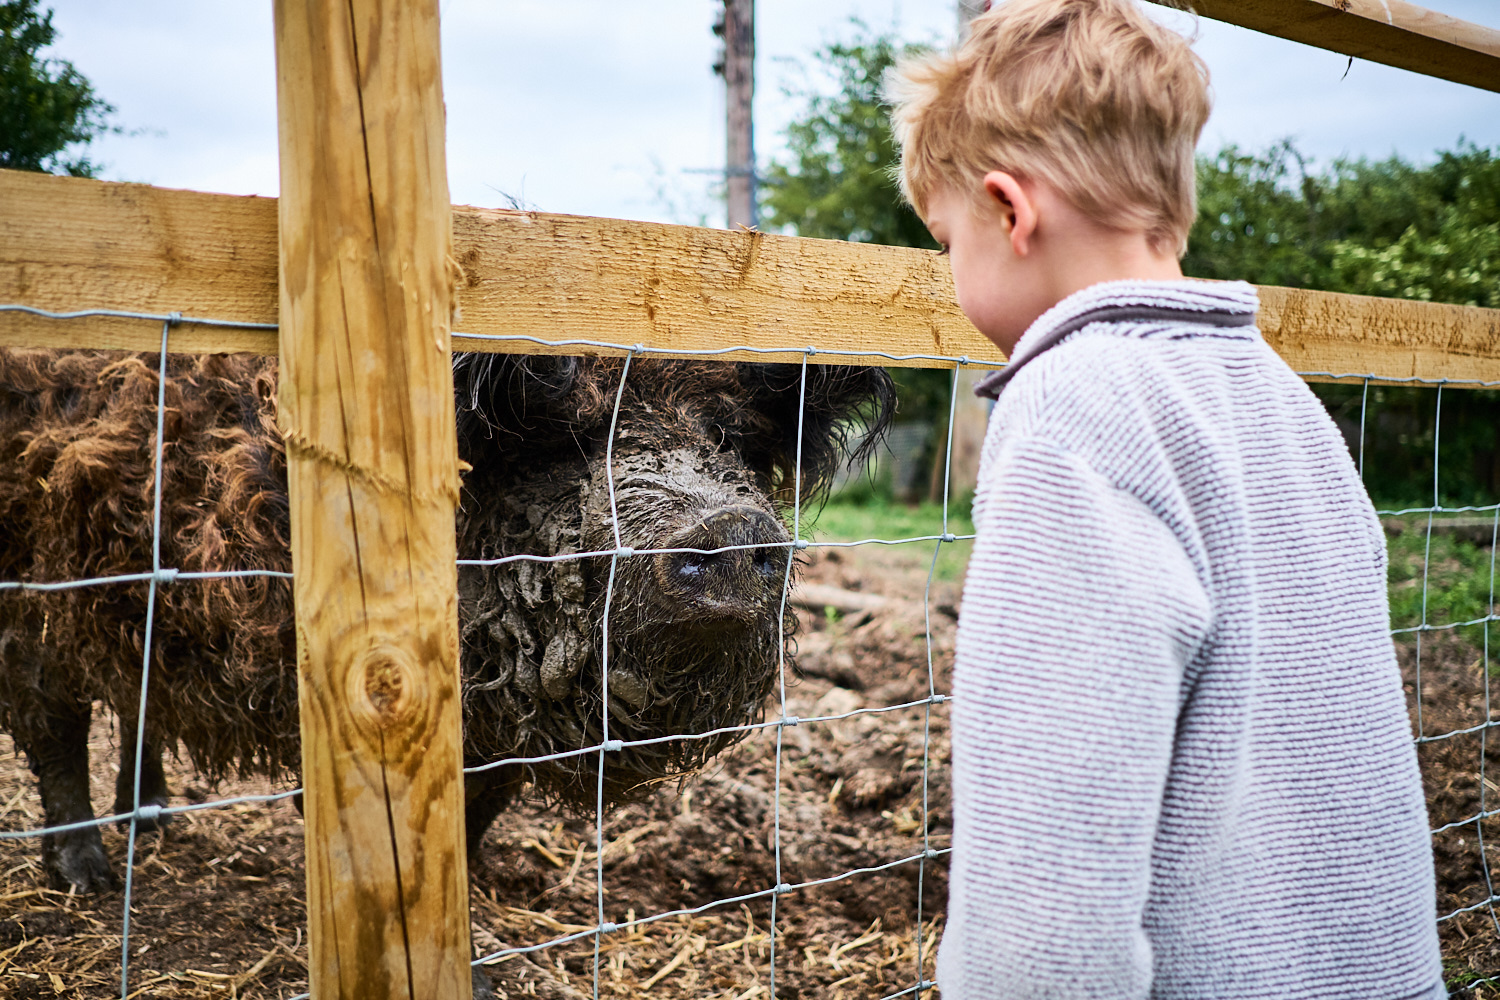 A young boy looking at a rescued pig at an animal sanctuary